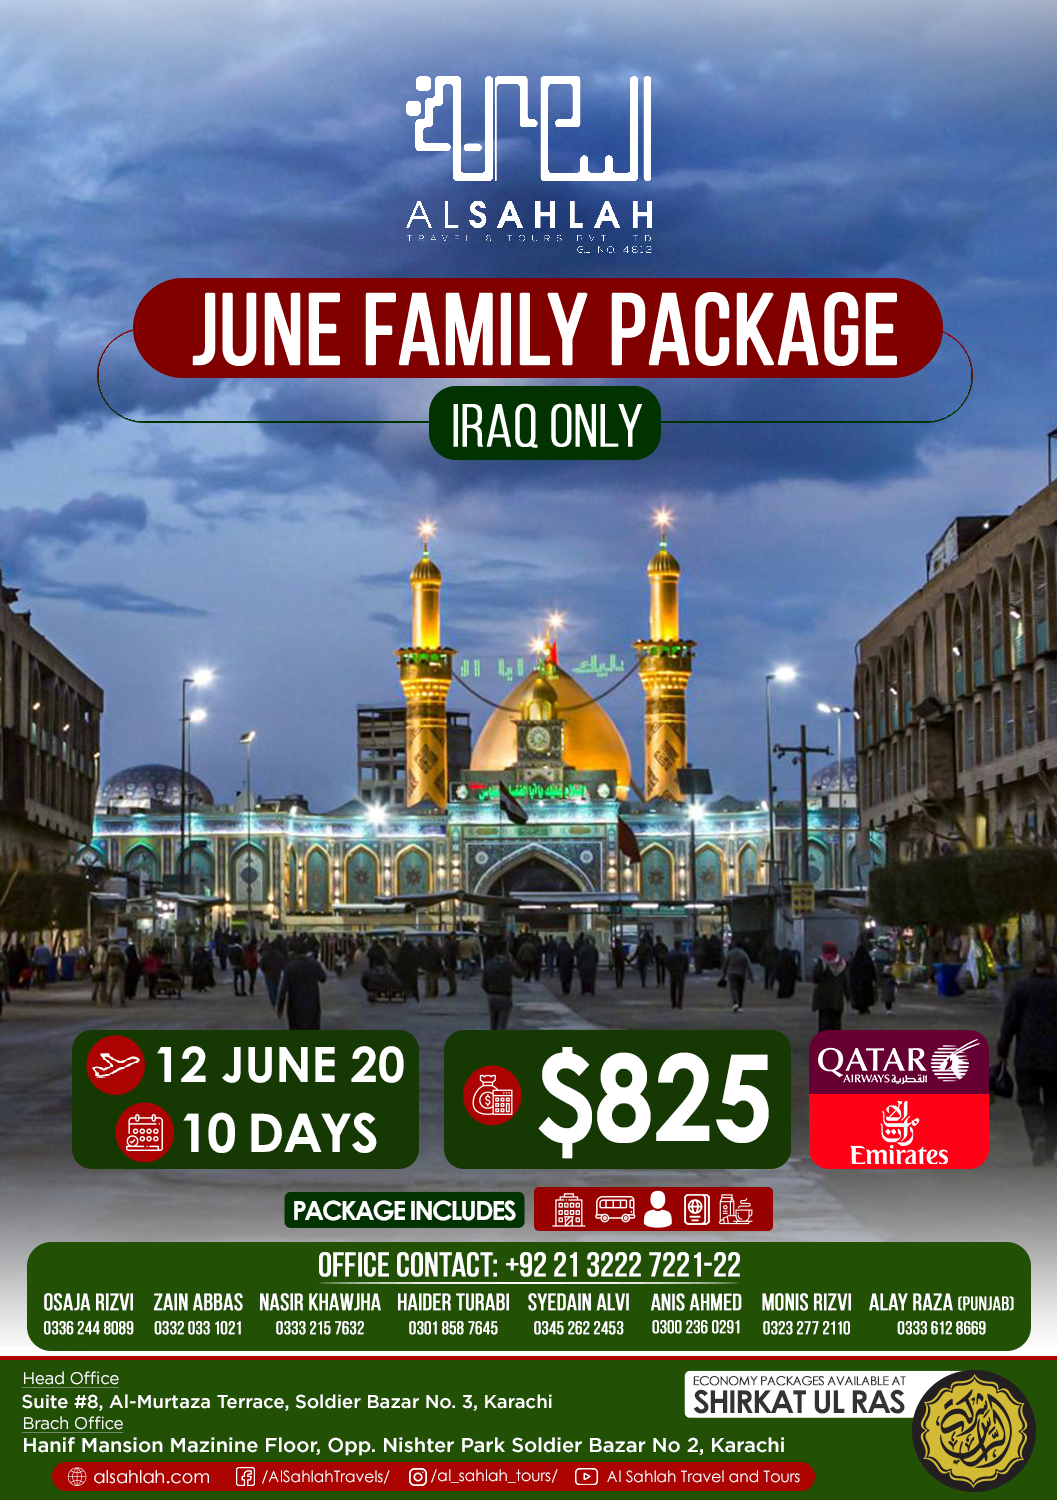 June Family Package - Iraq Only- Iraq Ziyarat Package